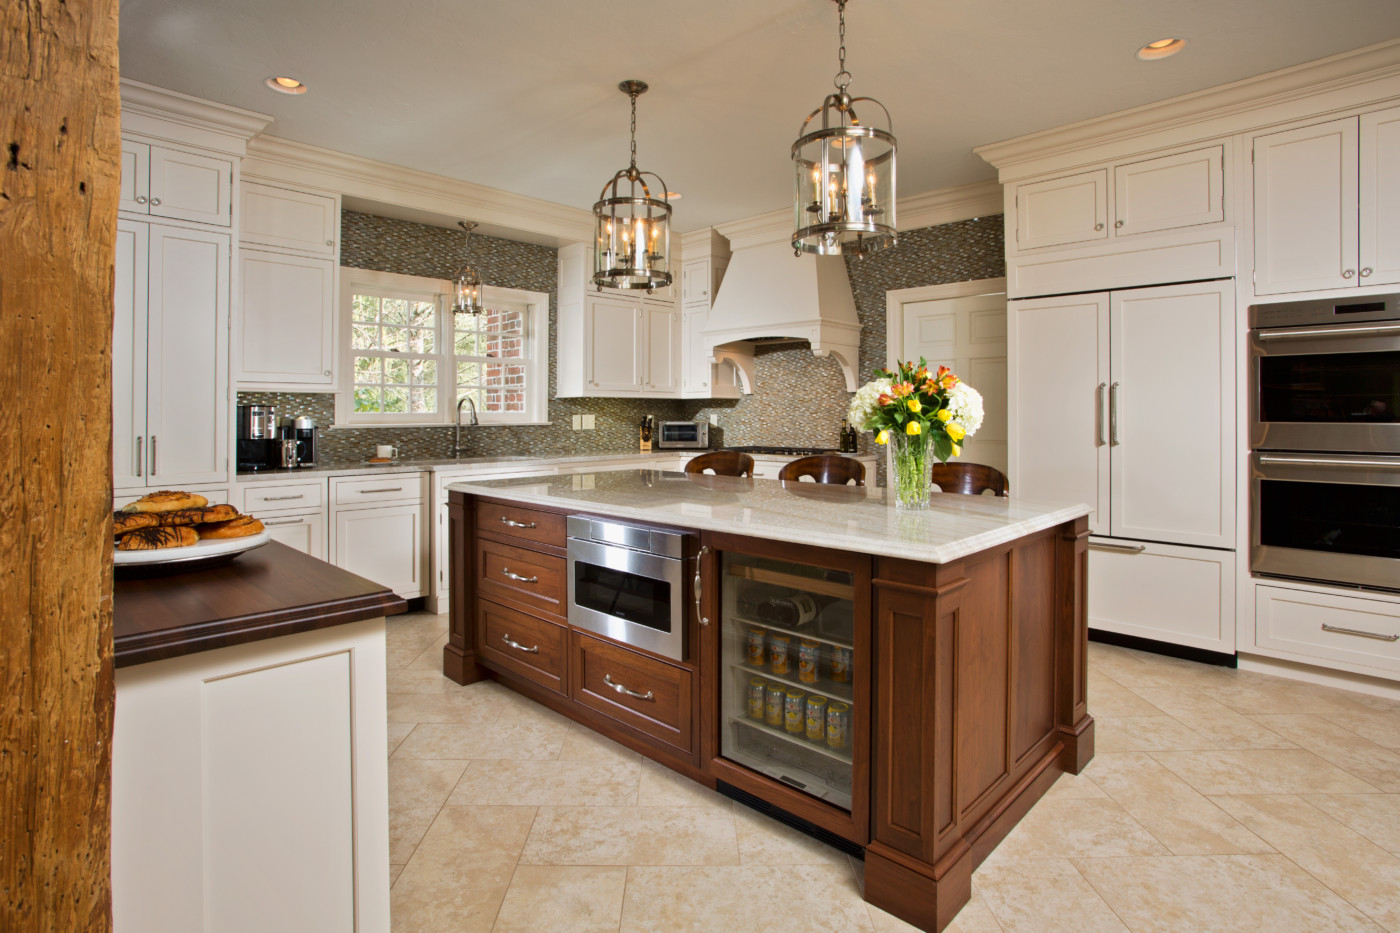 ... French Door Sub Zero 42 Inch Refrigerator And Dishwasher Blend With  Cabiry. Liance Panels An Elegant Subterfuge Teakwood Builders